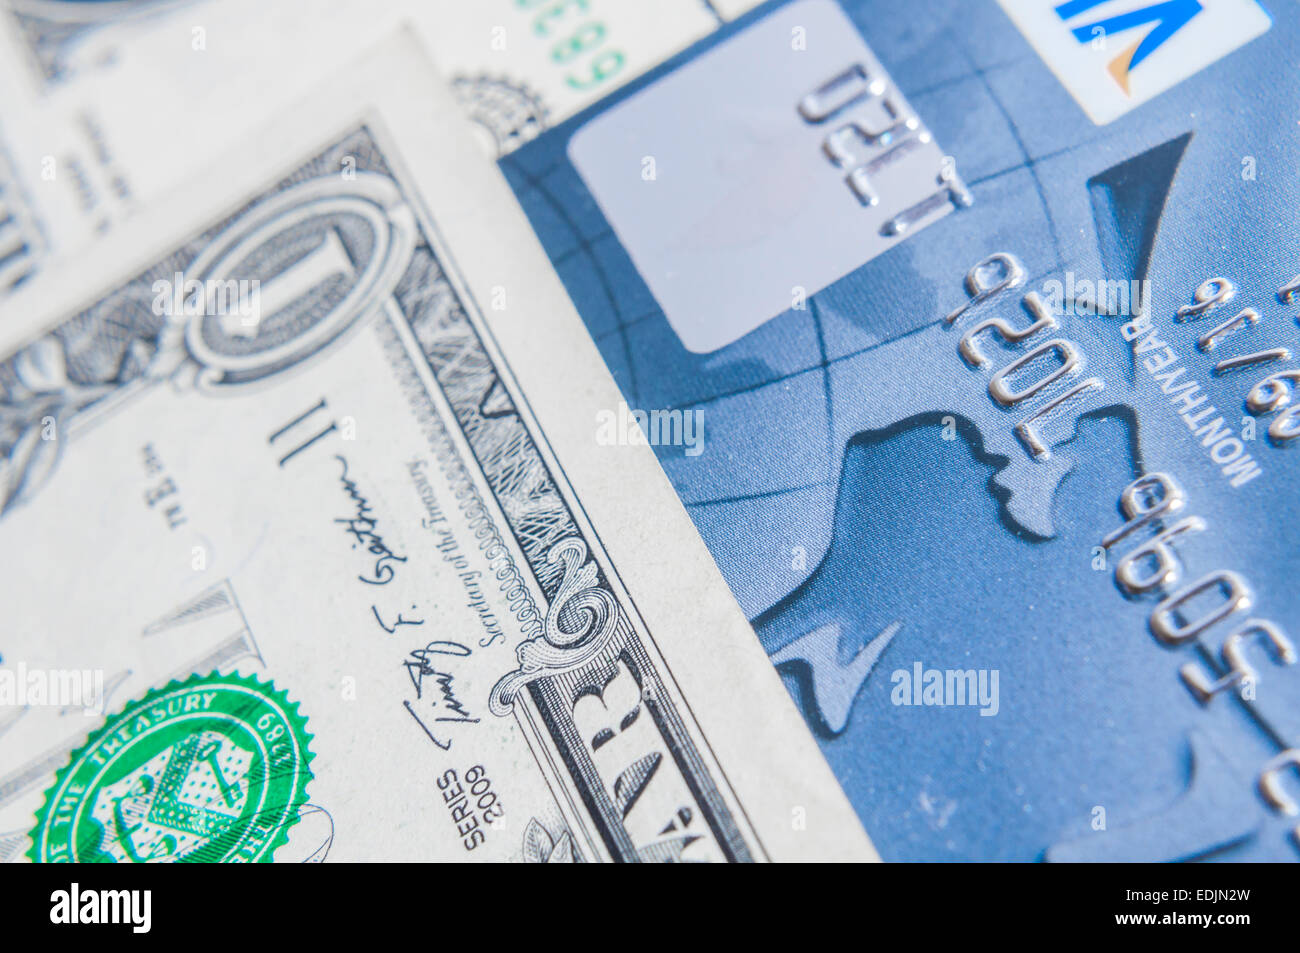 Credit Card on dollar bills as wealthy concept - Stock Image